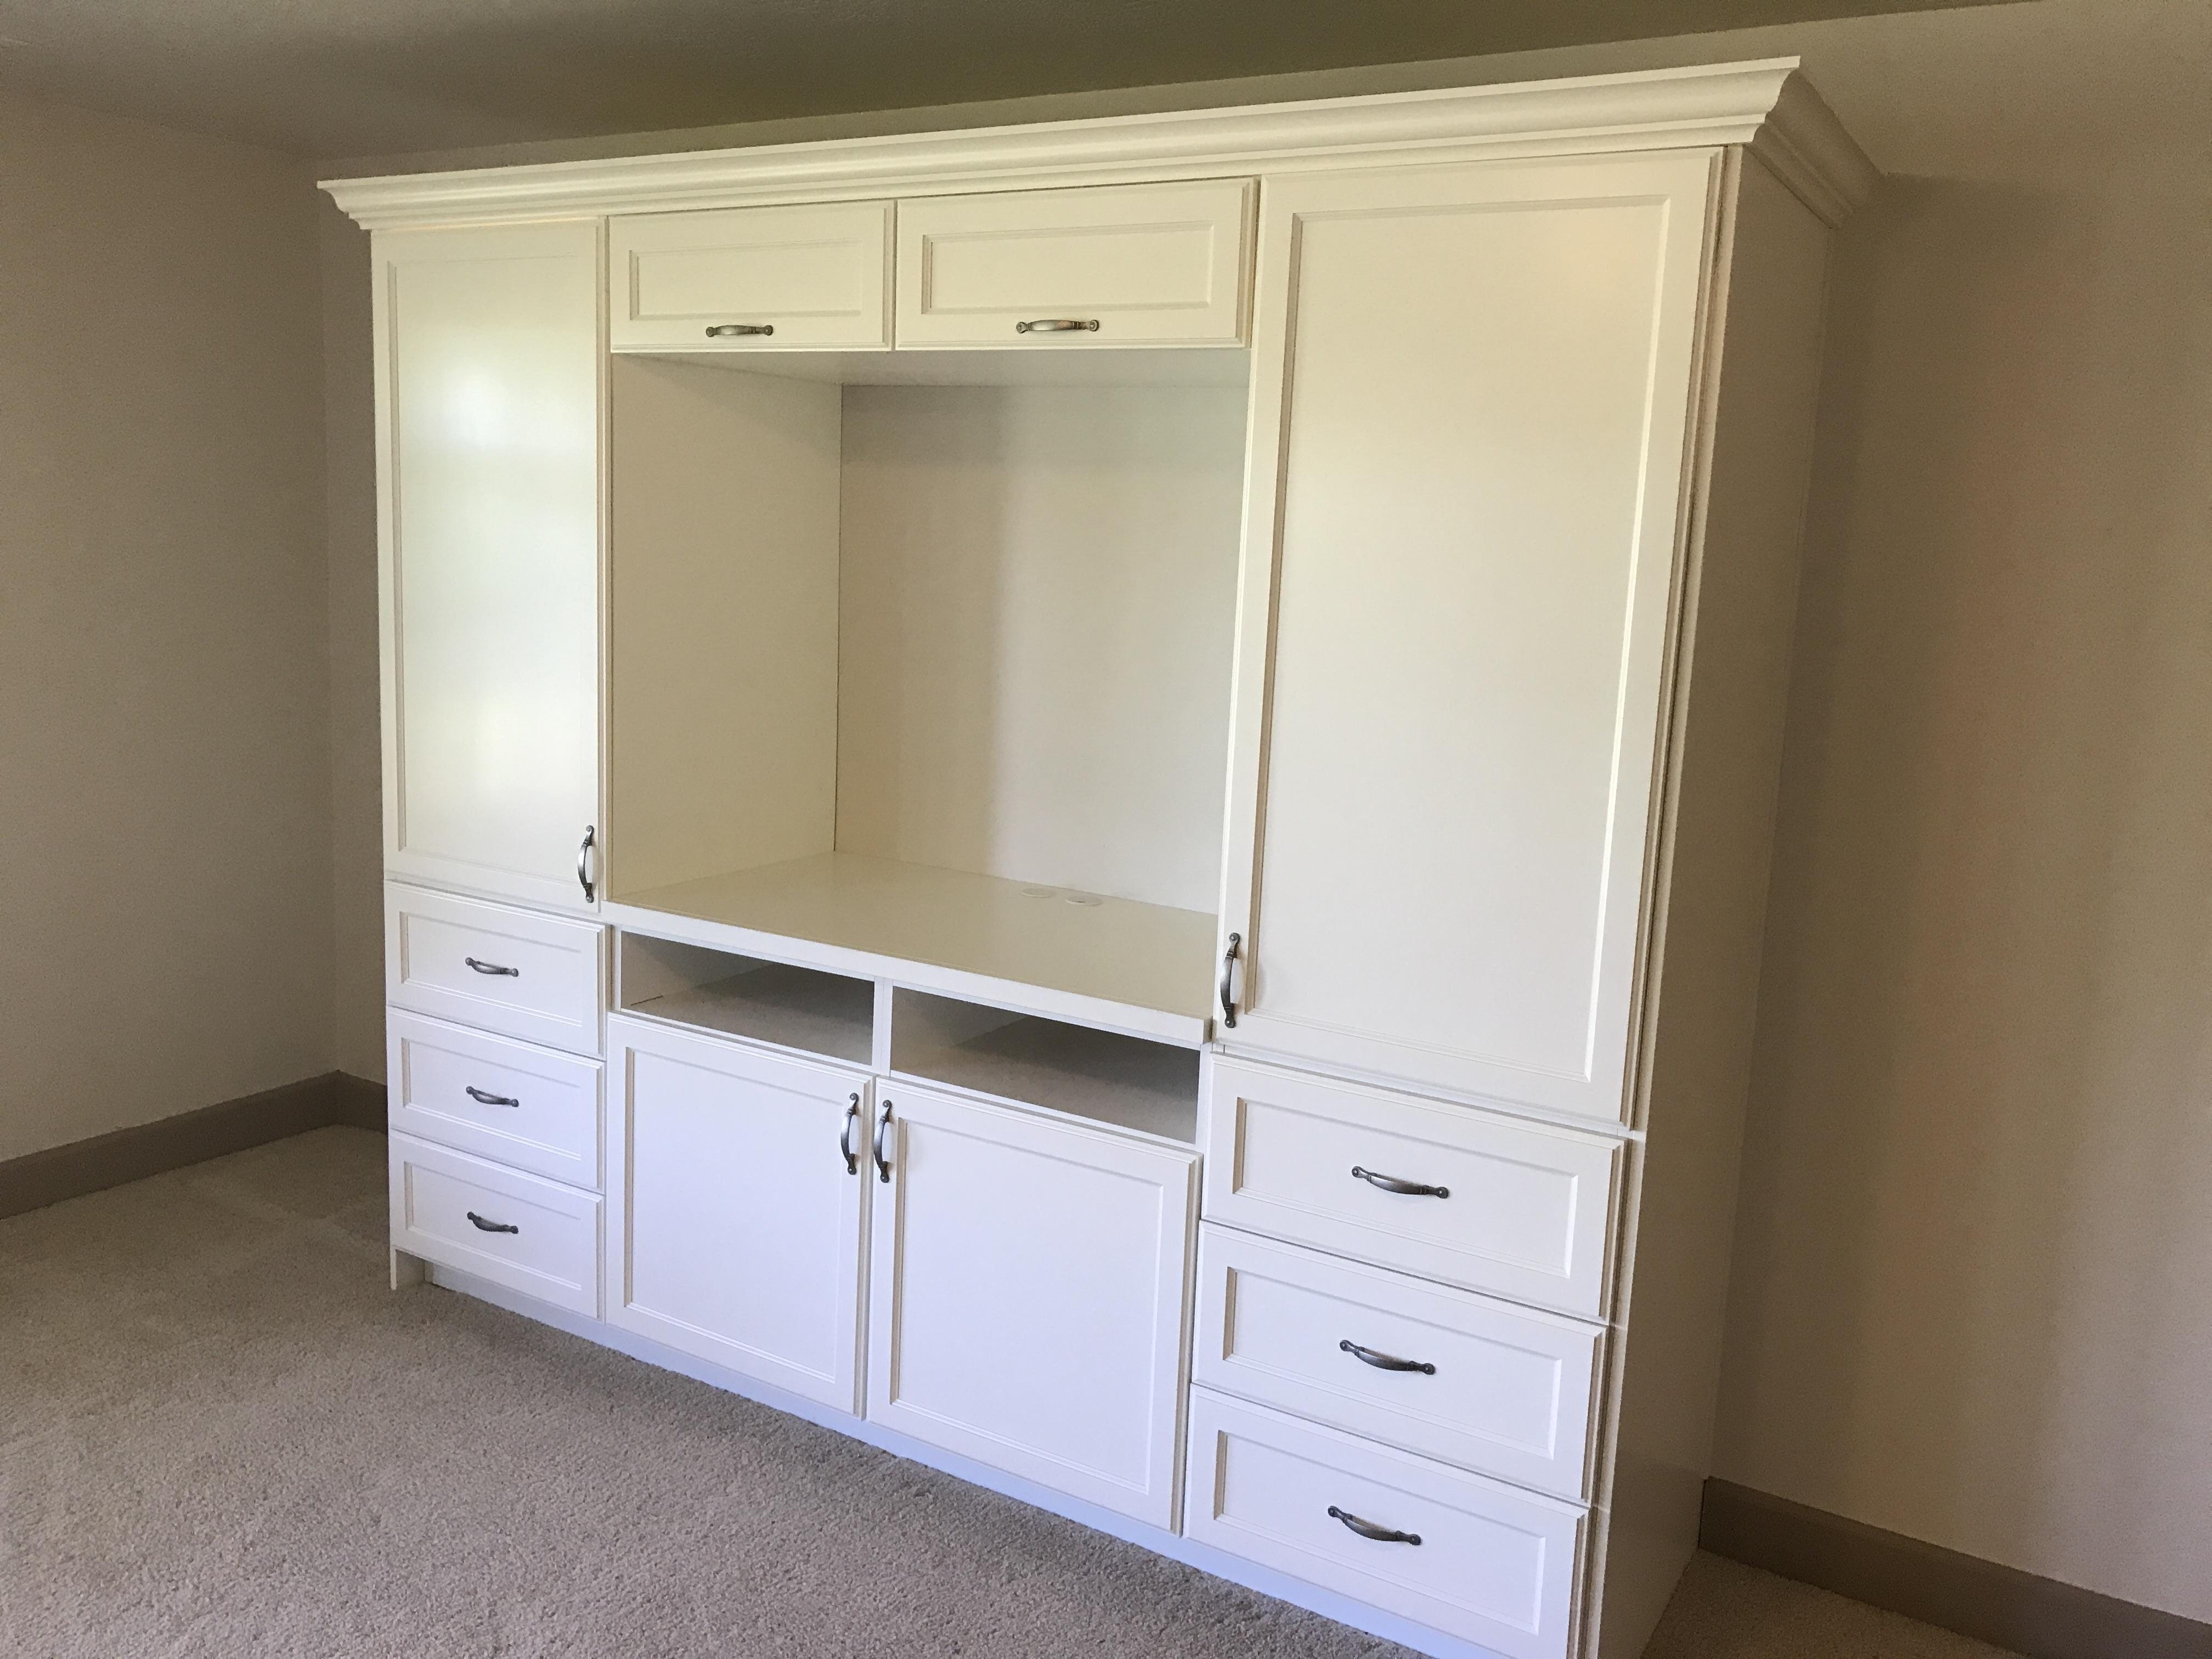 Cutting Edge Cabinetry